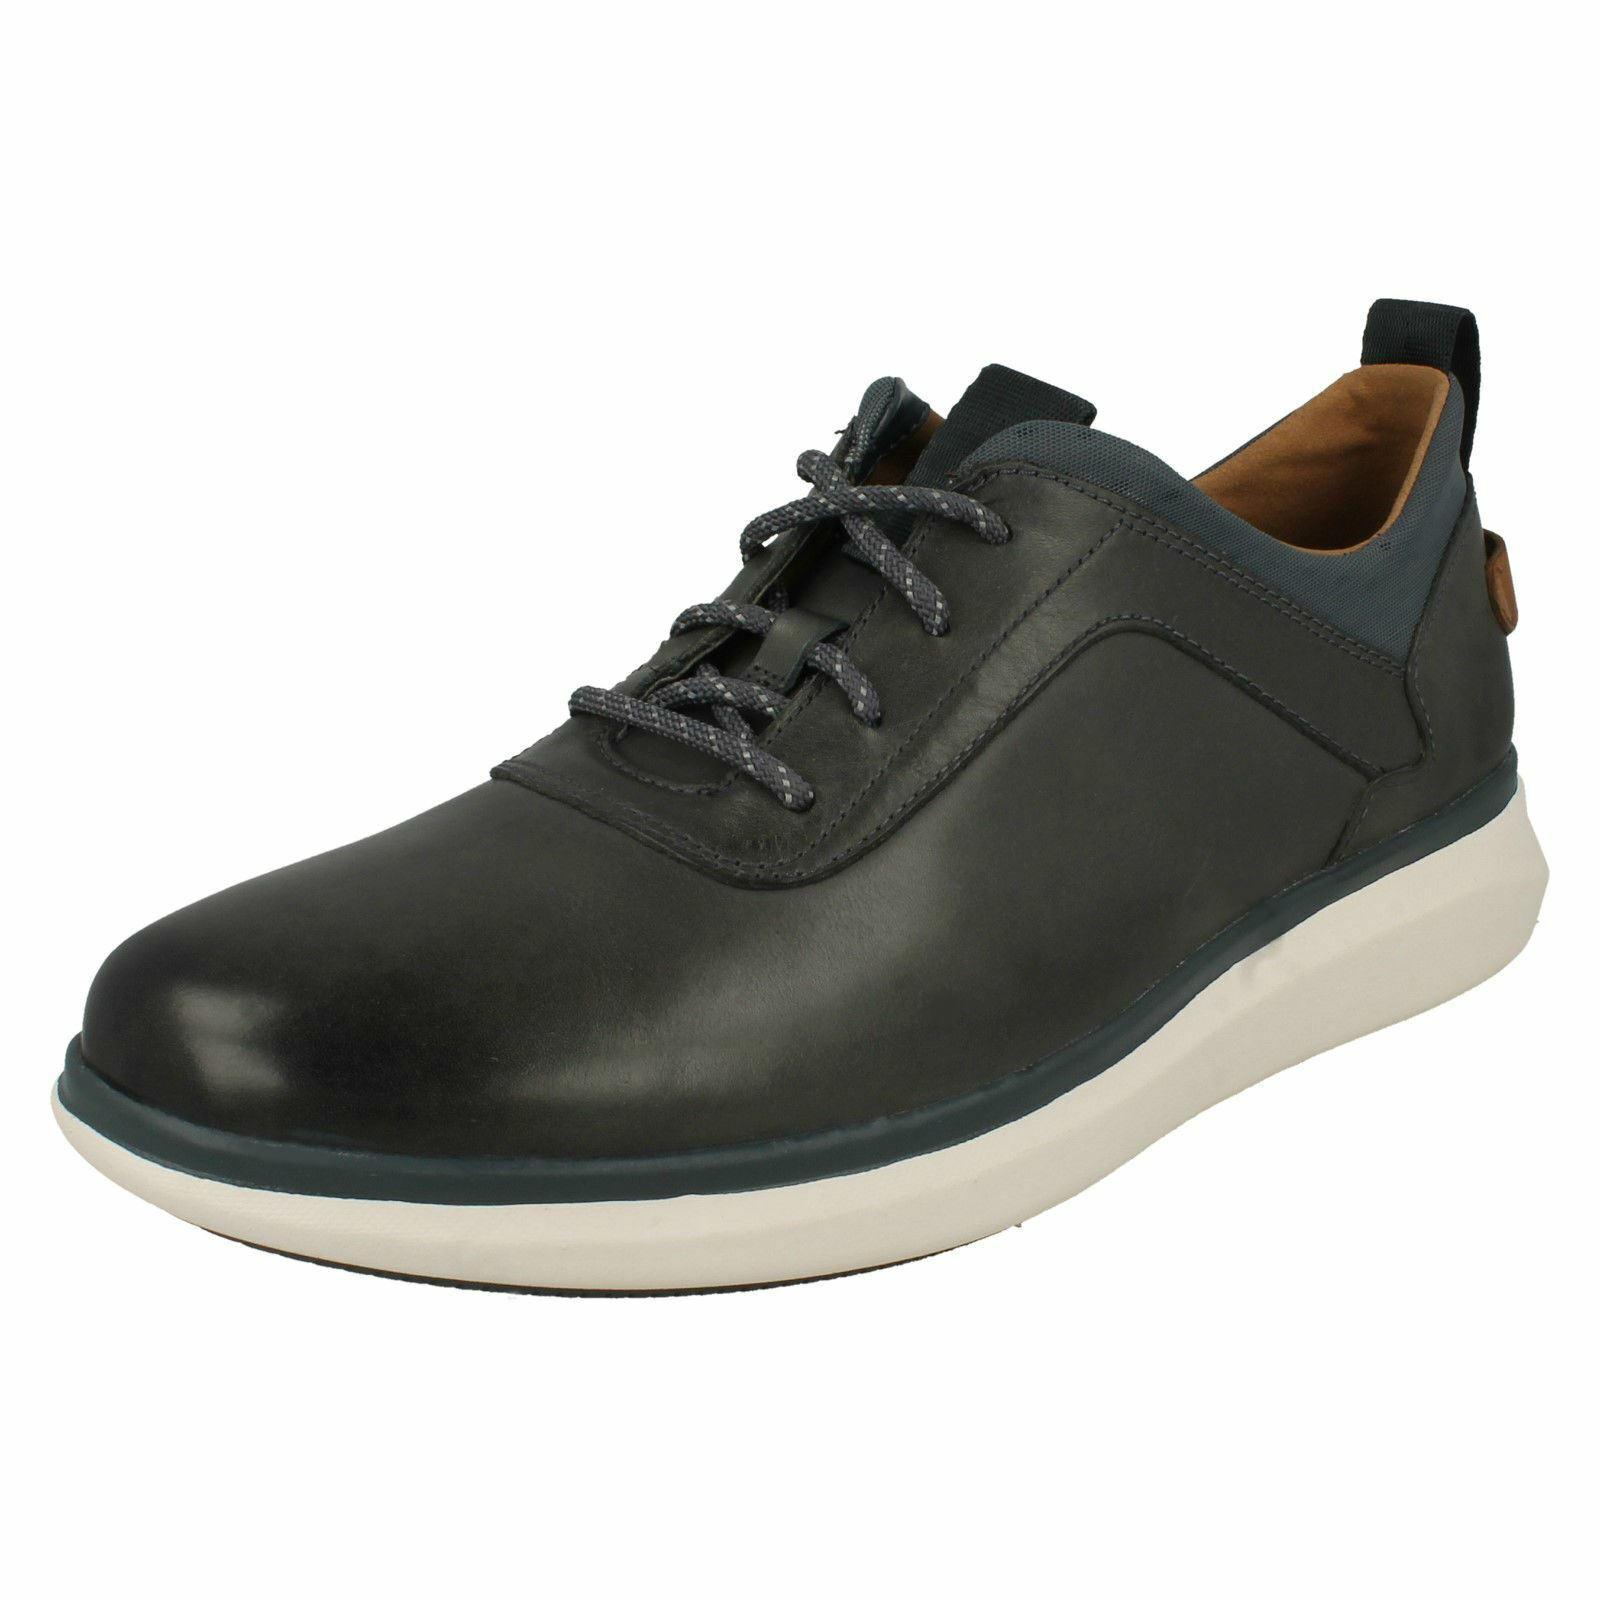 Mens Clarks Lace Up Casual shoes, Un Globe Vibe